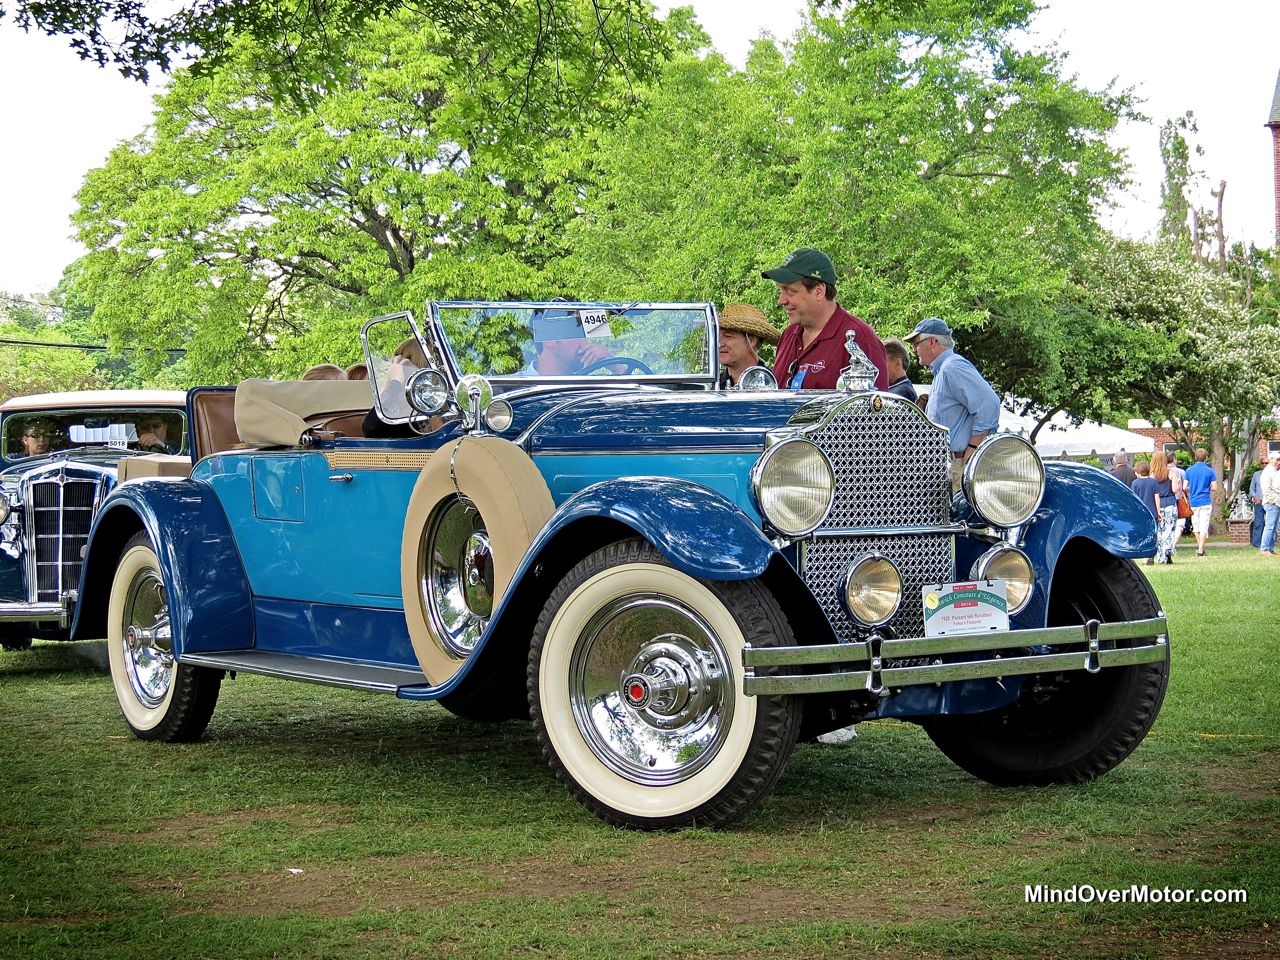 1929 Packard 640 Runabout at the Greenwich Concours d'Elegance